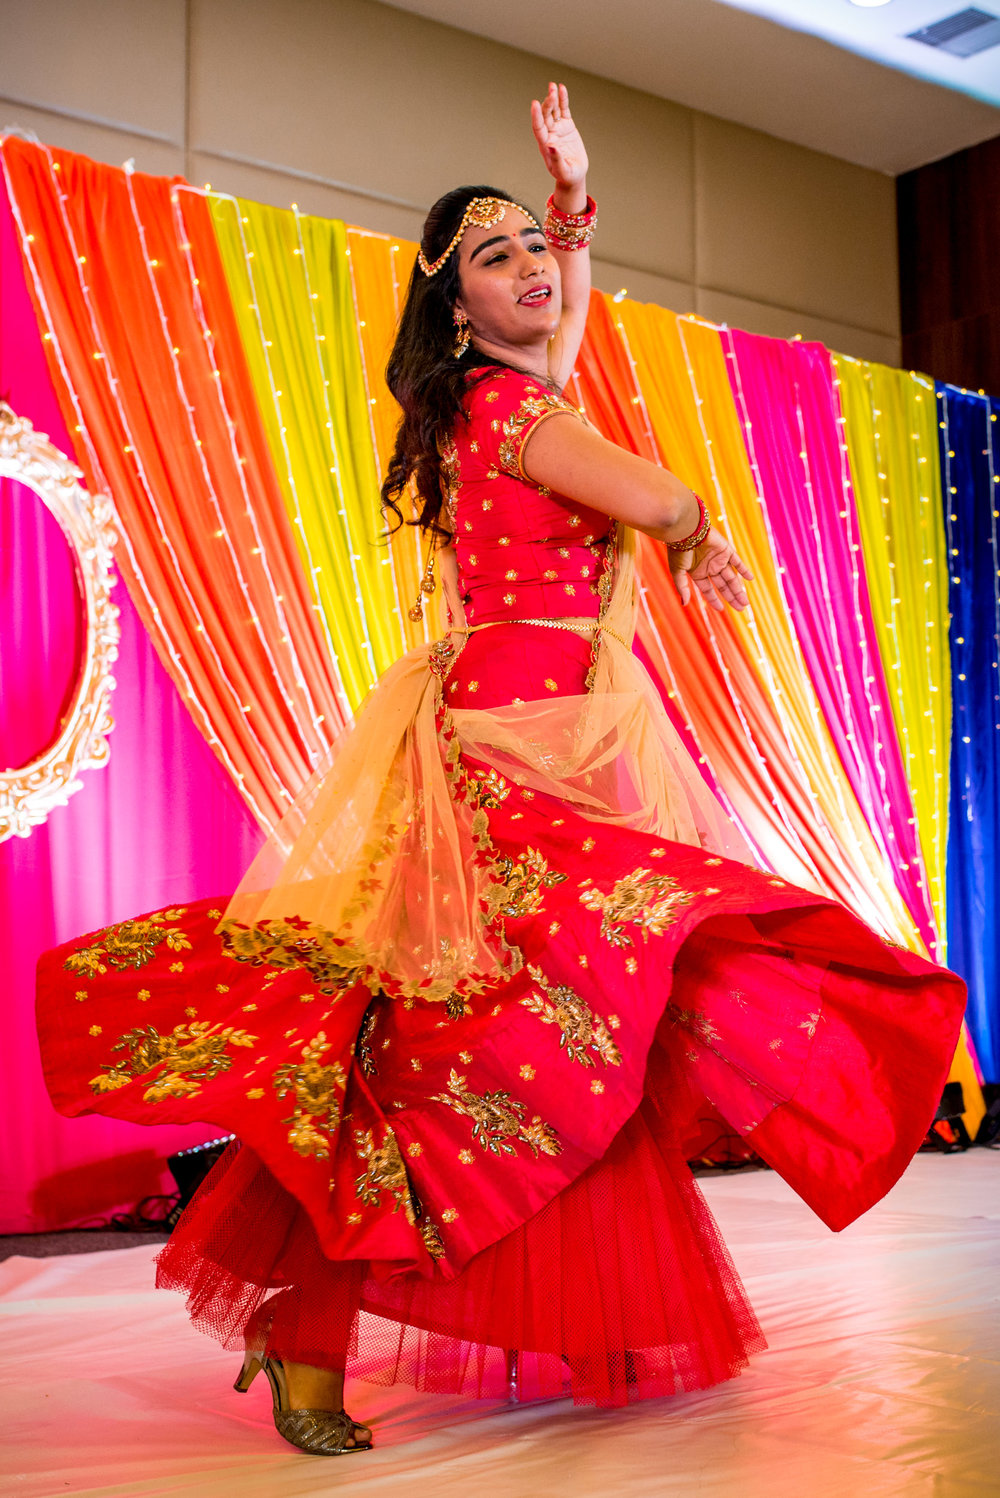 cover-hyderabad-wedding-1-3.jpg